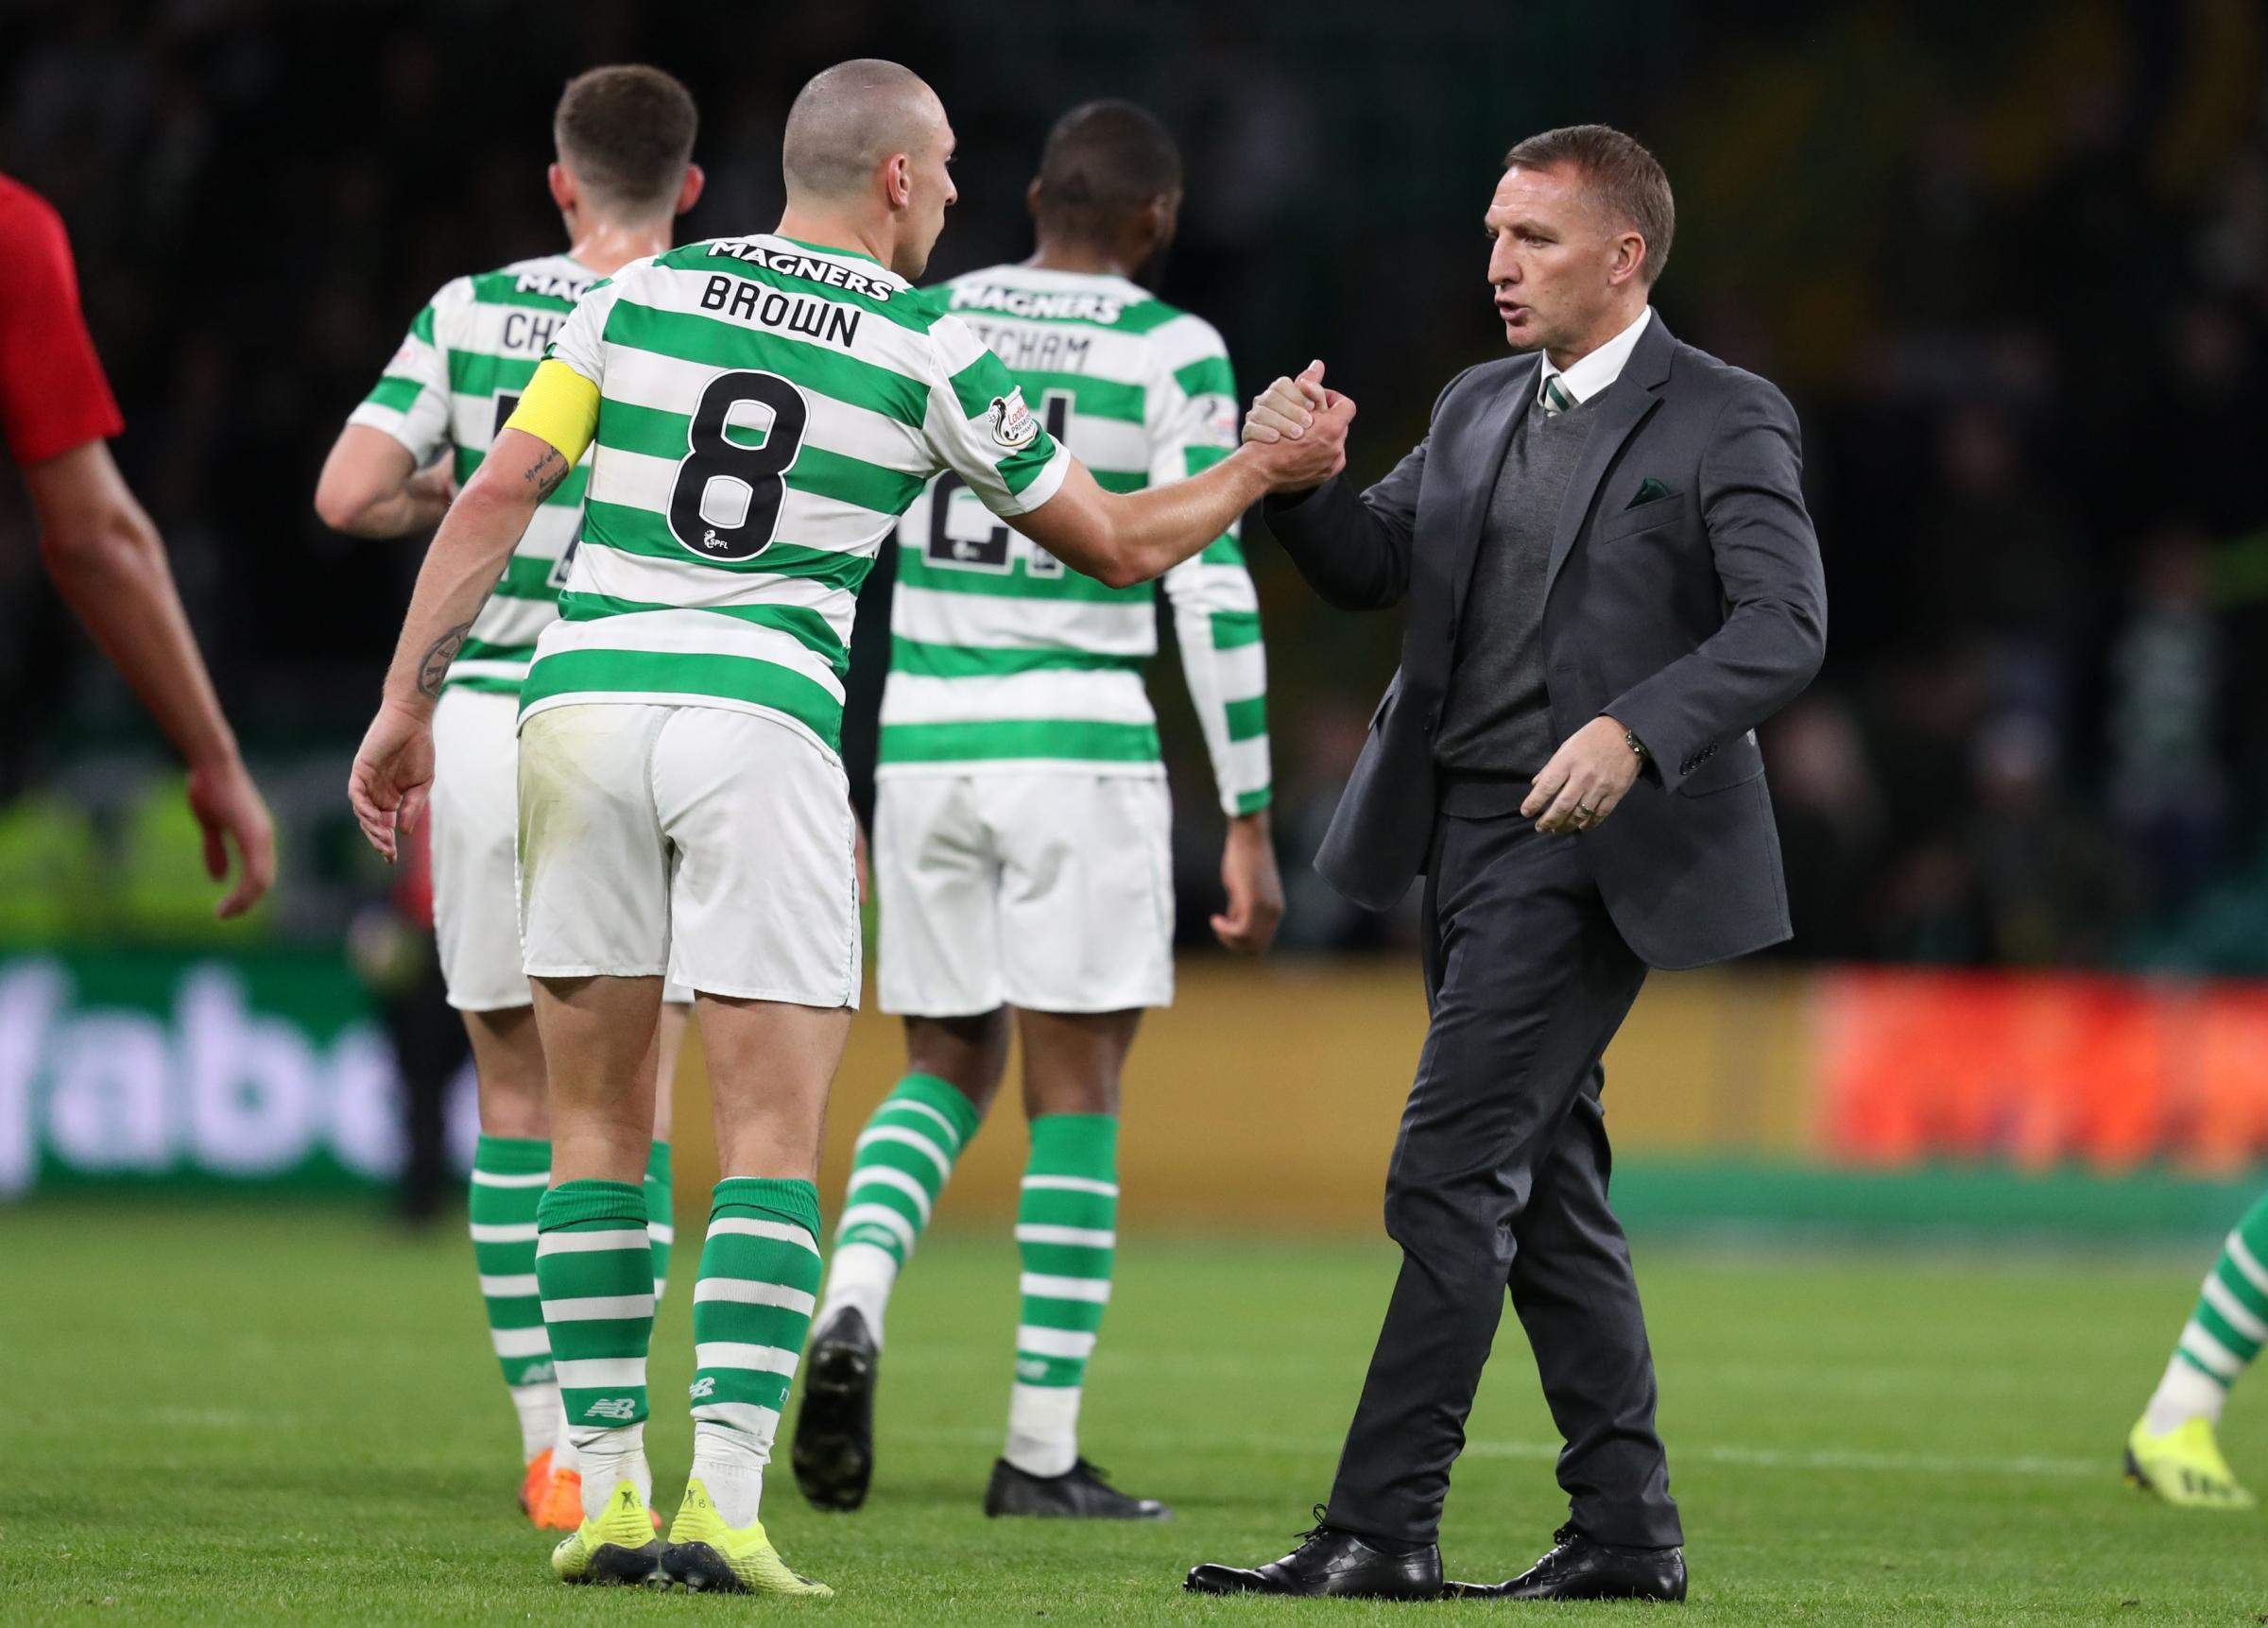 Celtic's Scott Brown and manager Brendan Rodgers after  the UEFA Europa League Play-Off, Second Leg match at Celtic Park, Glasgow. PRESS ASSOCIATION Photo. Picture date: Thursday August 30, 2018. See PA story SOCCER Celtic. Photo credit